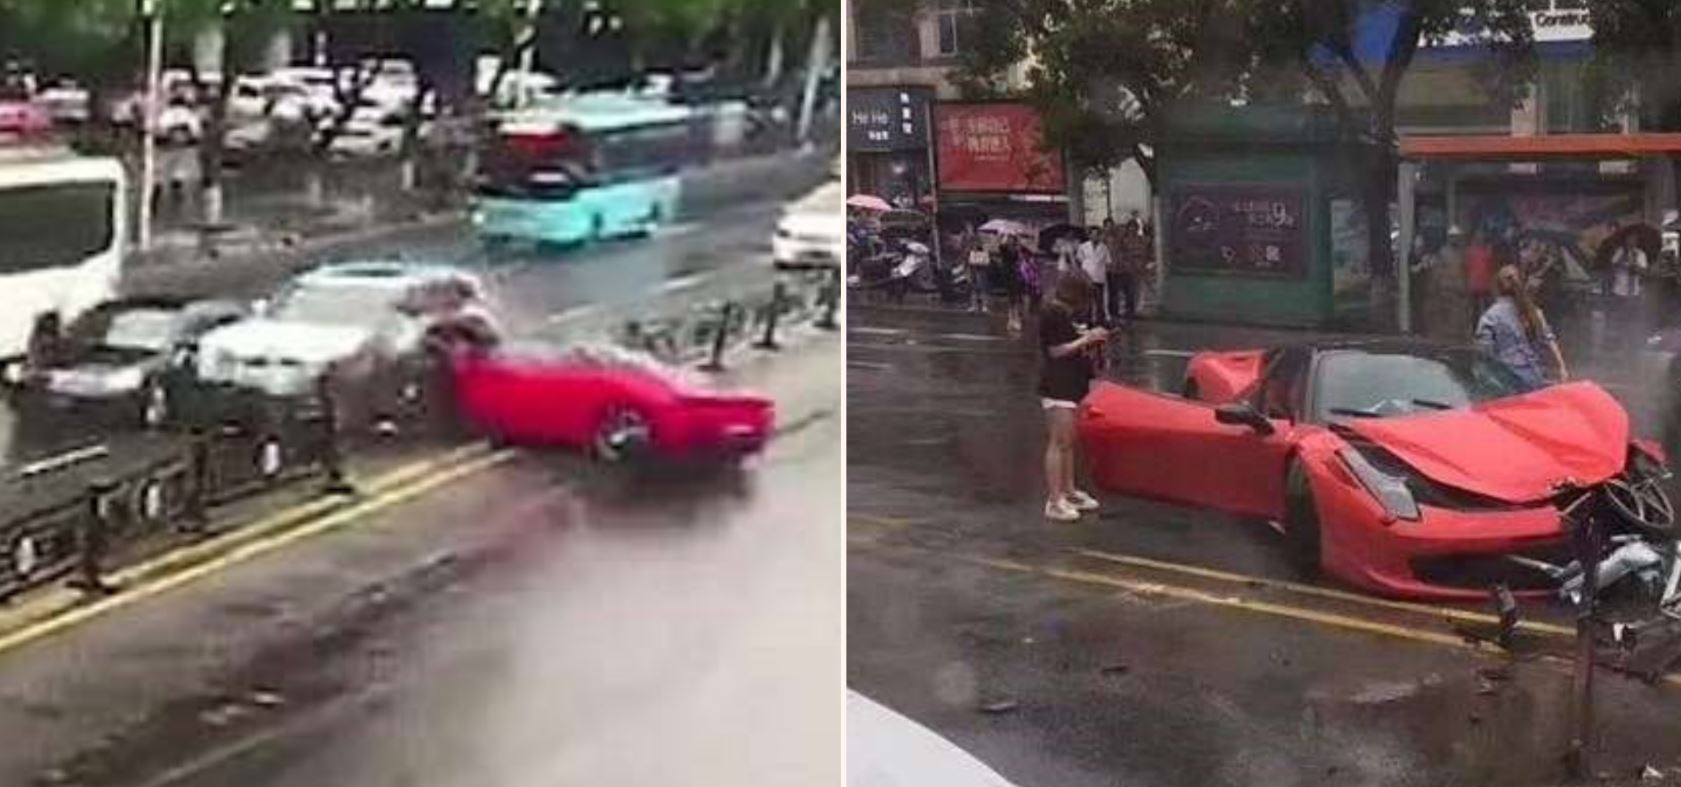 Dodgy driver sends new Ferrari 458 sideways into oncoming traffic minutes after renting it